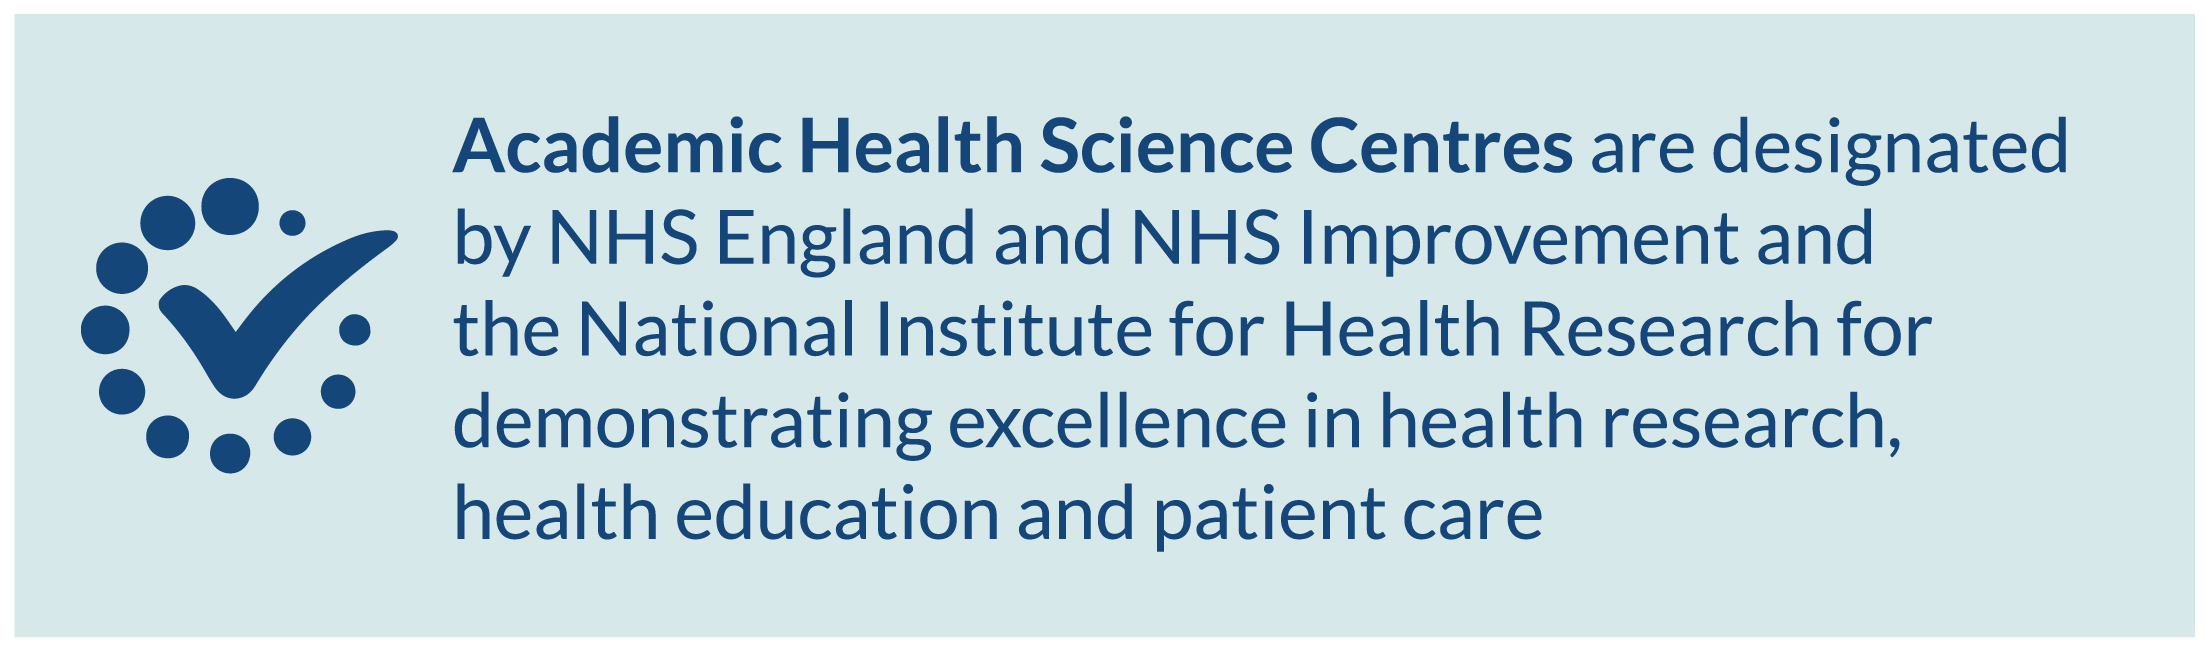 Academic Health Science Centres are designated by NHS England and NHS Improvement and the National Institute for Health Research for demonstrating excellence in health research, health education and patient care